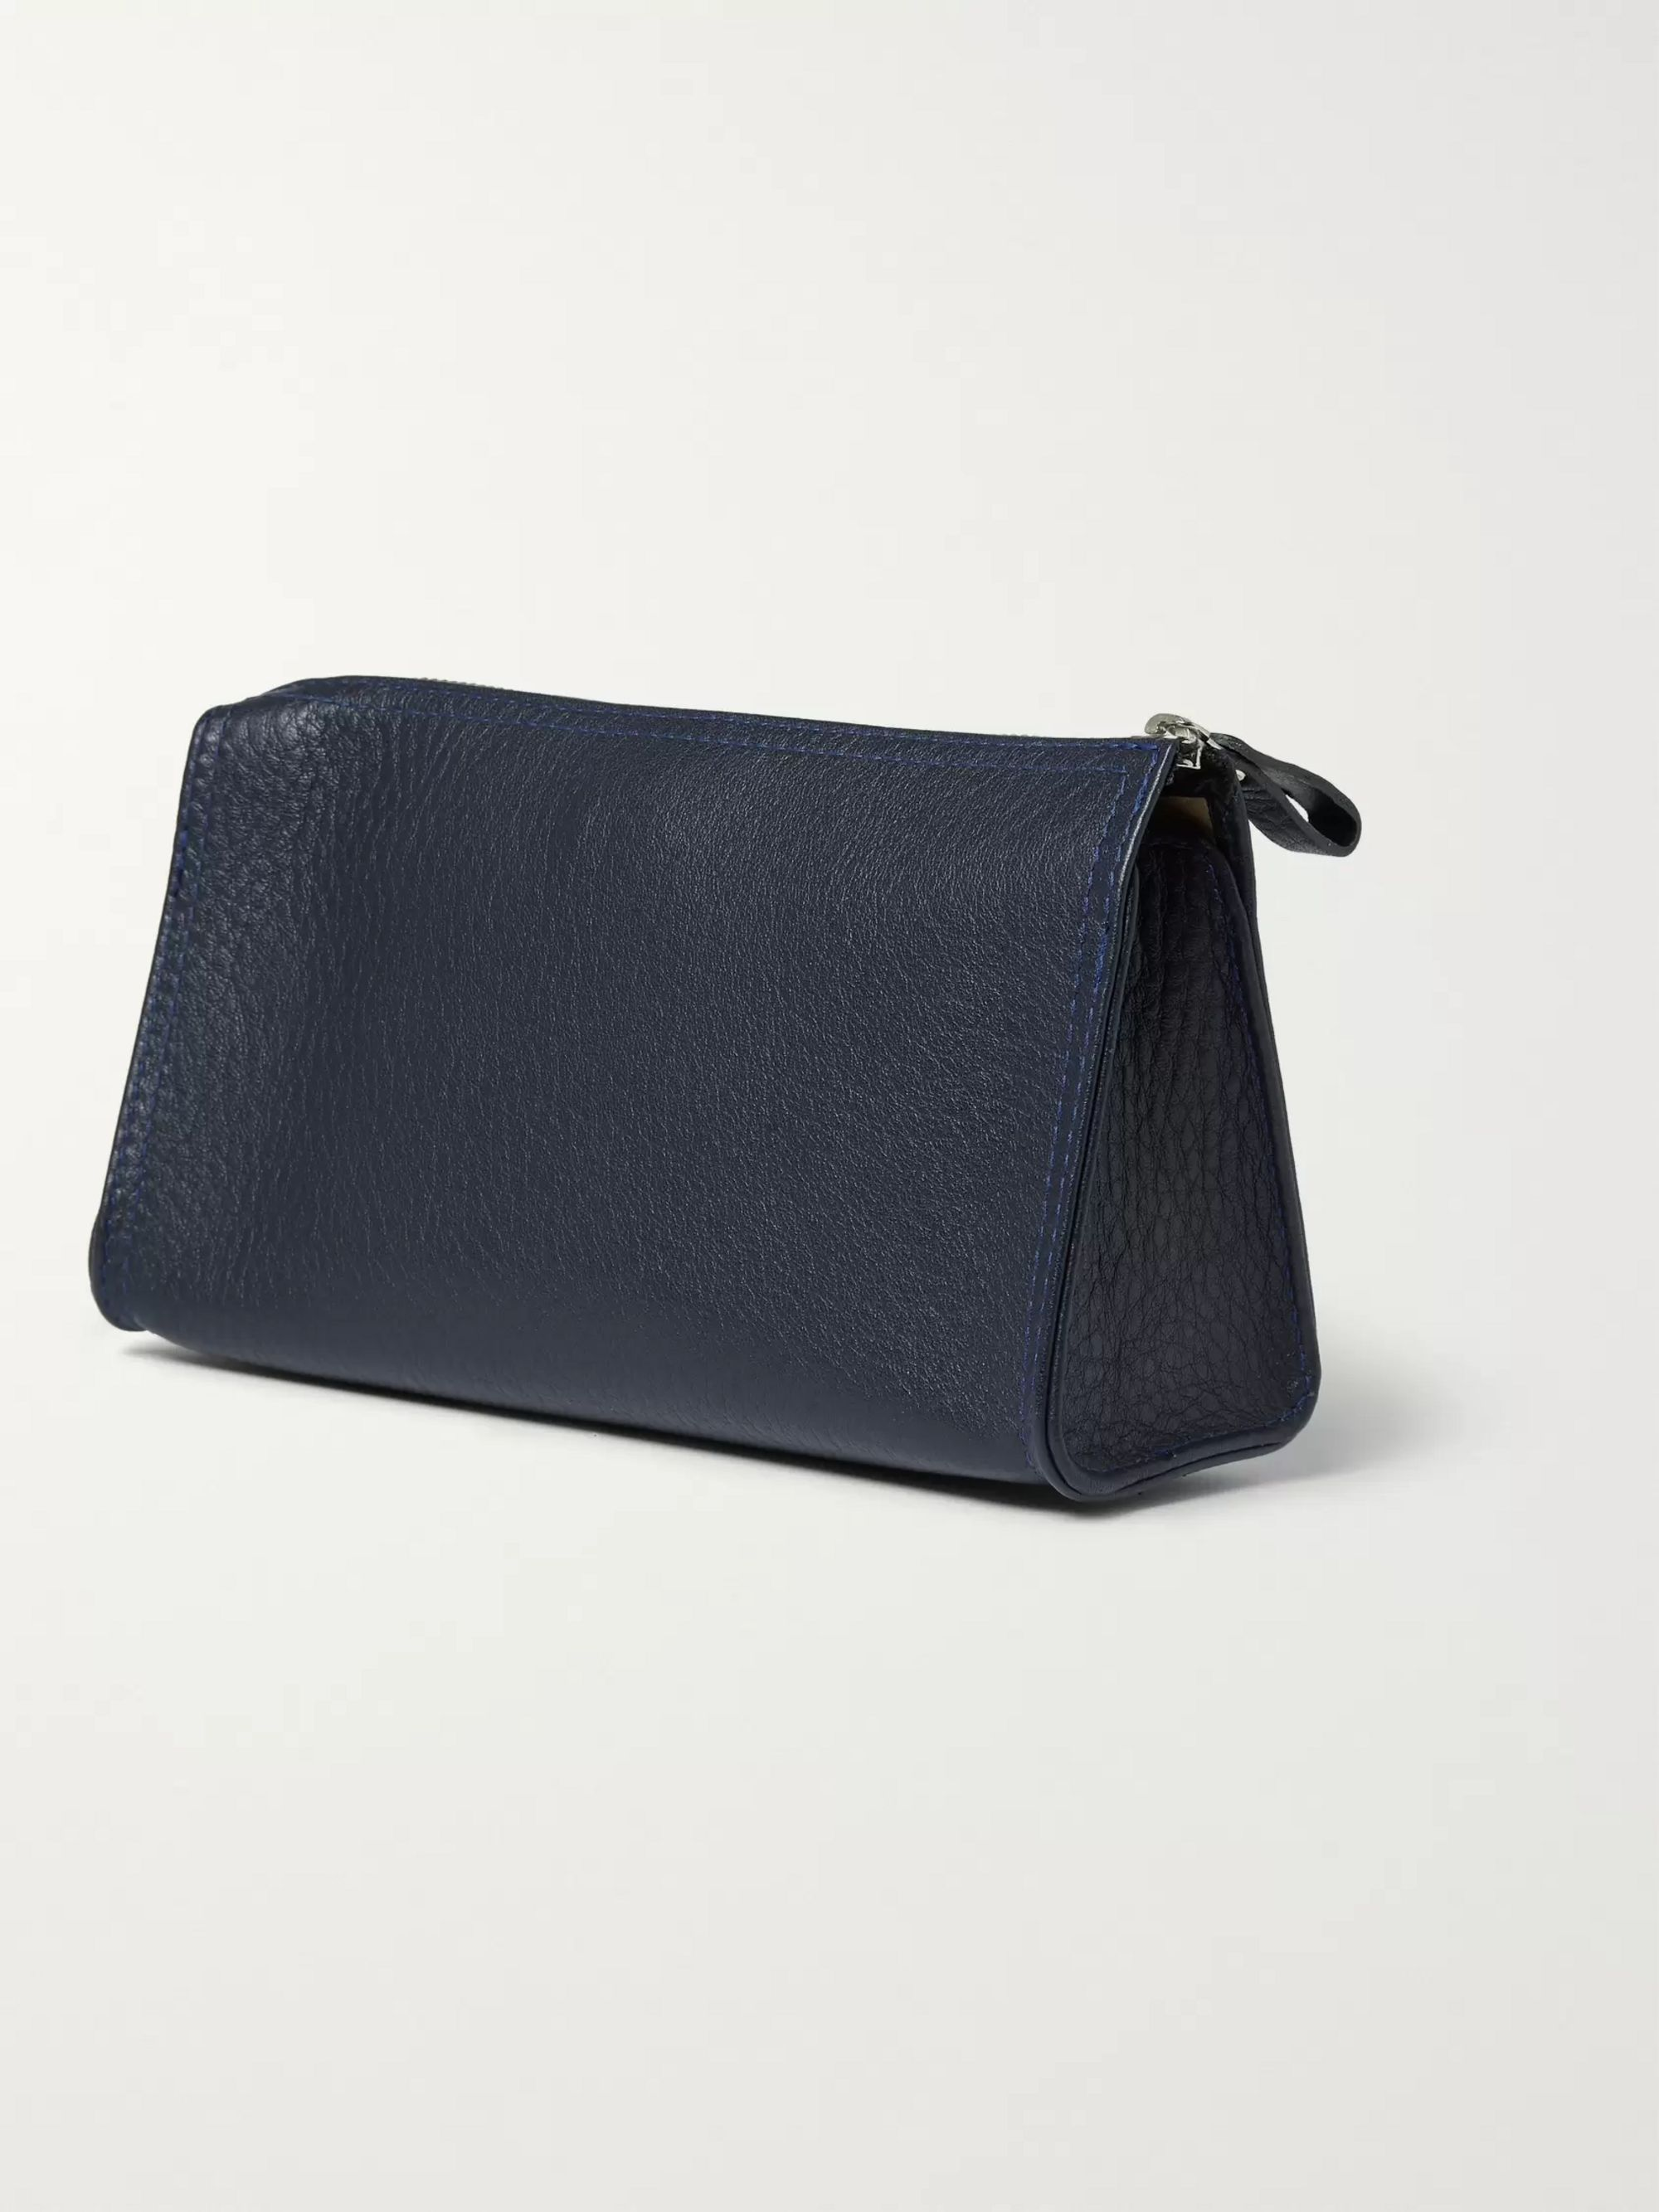 D R Harris Grained-Leather Wash Bag